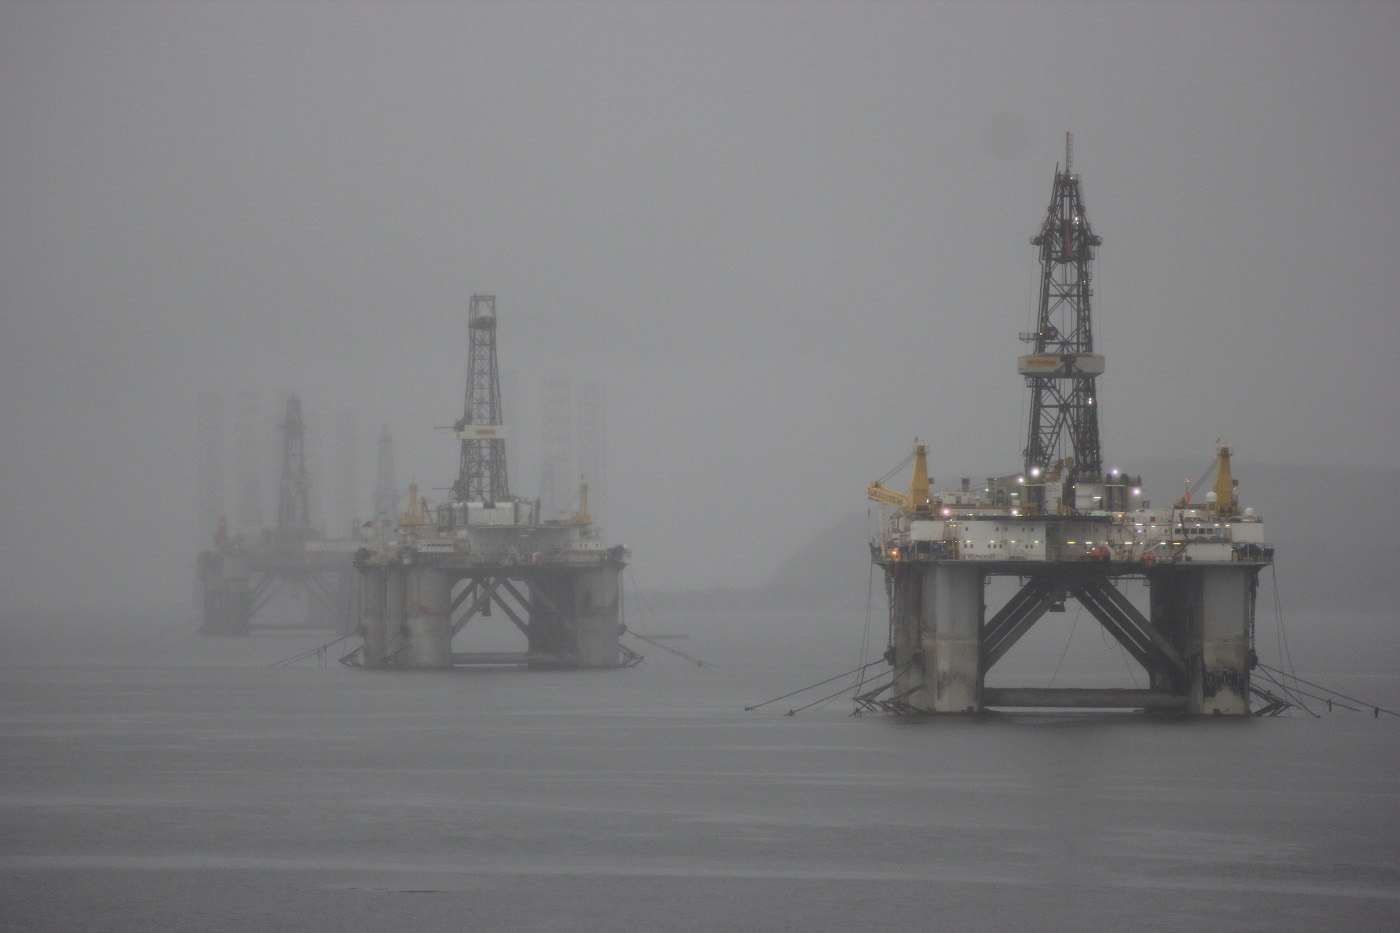 Rigs in the Mist